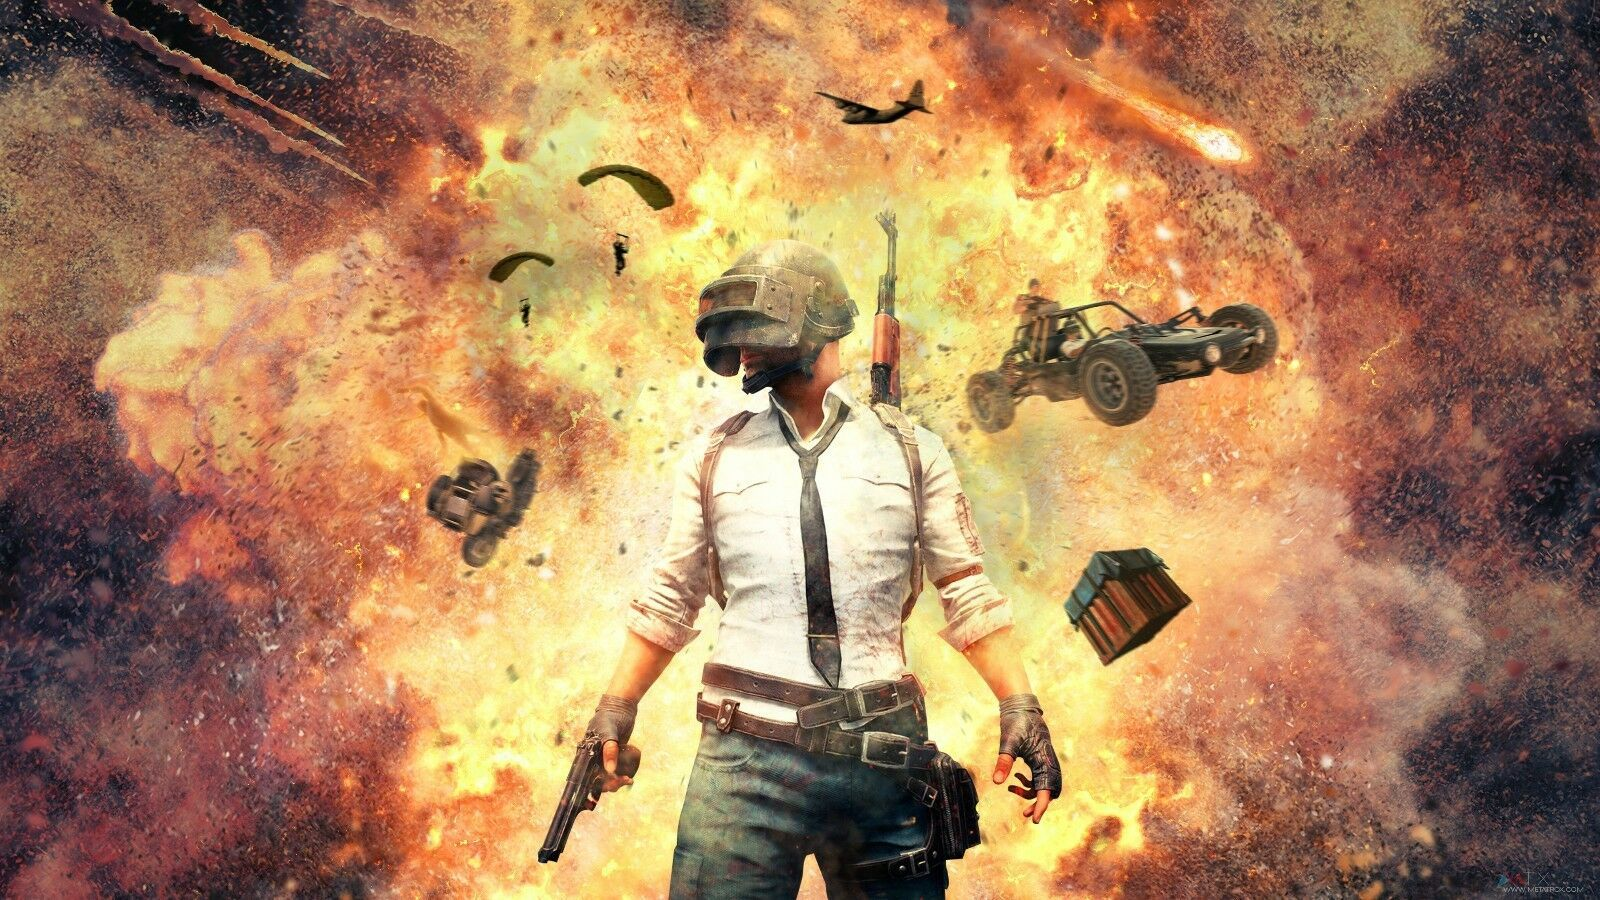 Pubg Playerunknown S Battleground Battlegrounds Silk Poster 24 X 14 Inch Wallpaper Pc Hd Wallpaper 4k Samsung Wallpaper